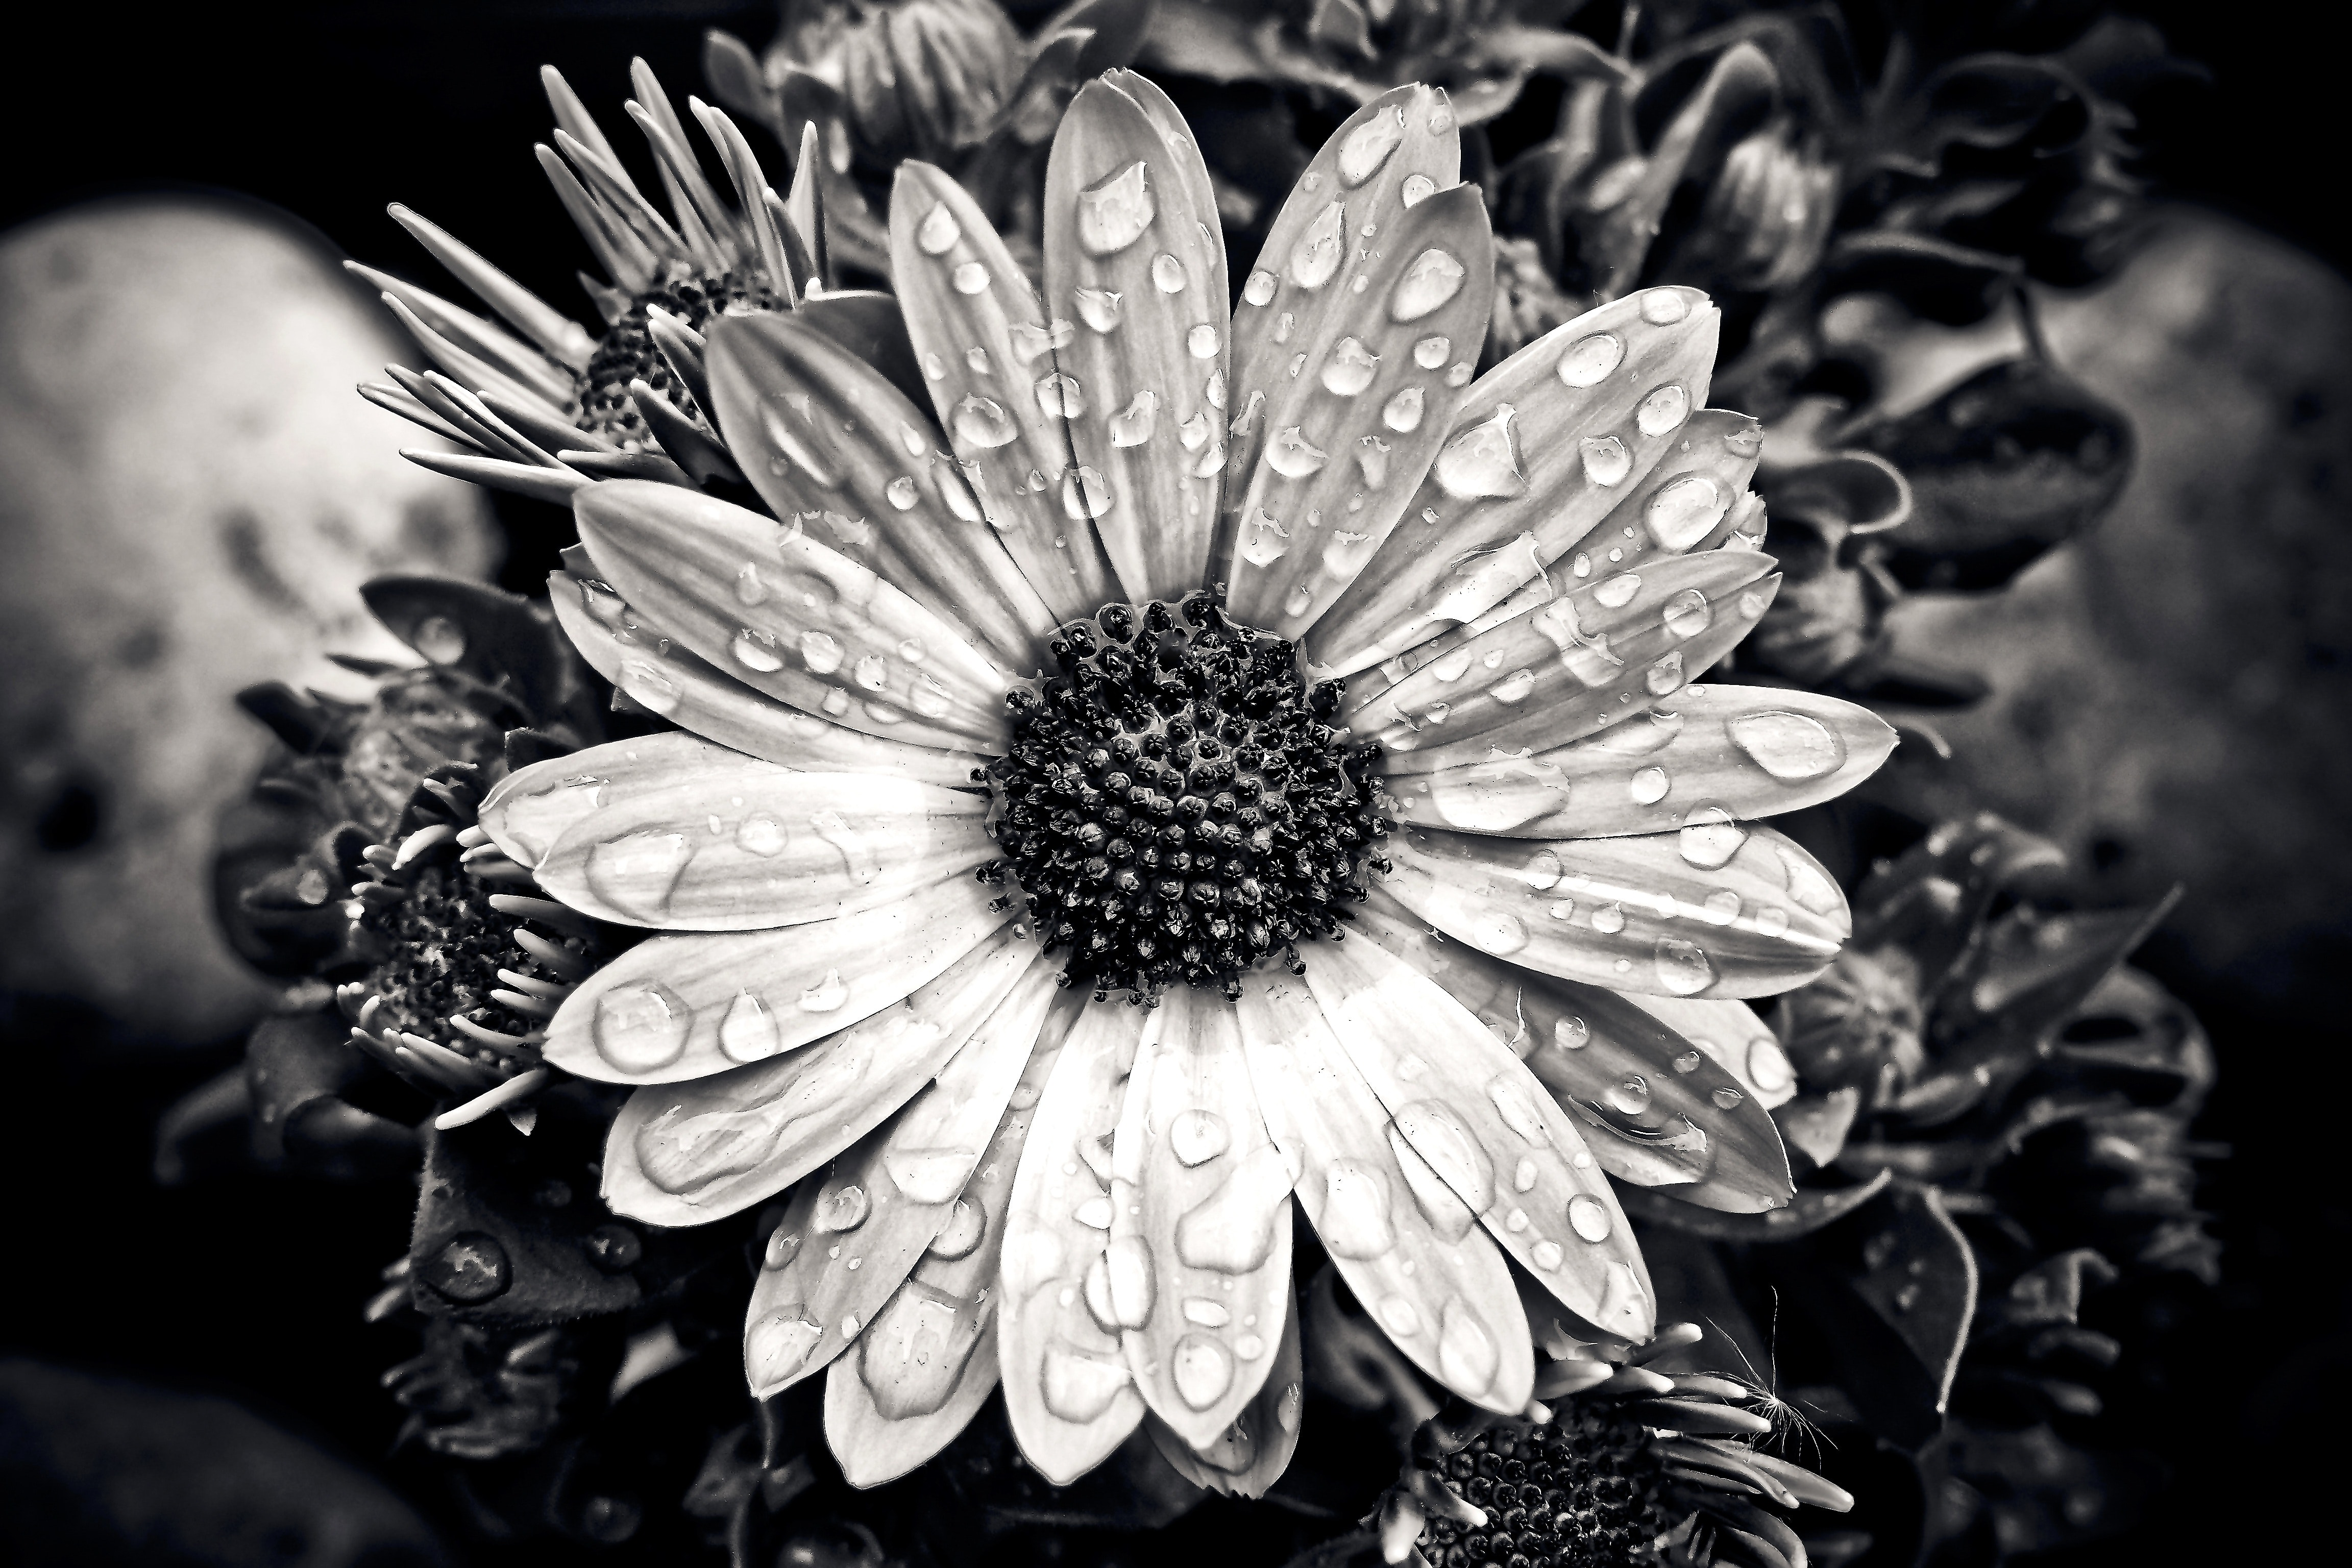 Grayscale Of Daisy Flower Free Stock Photo